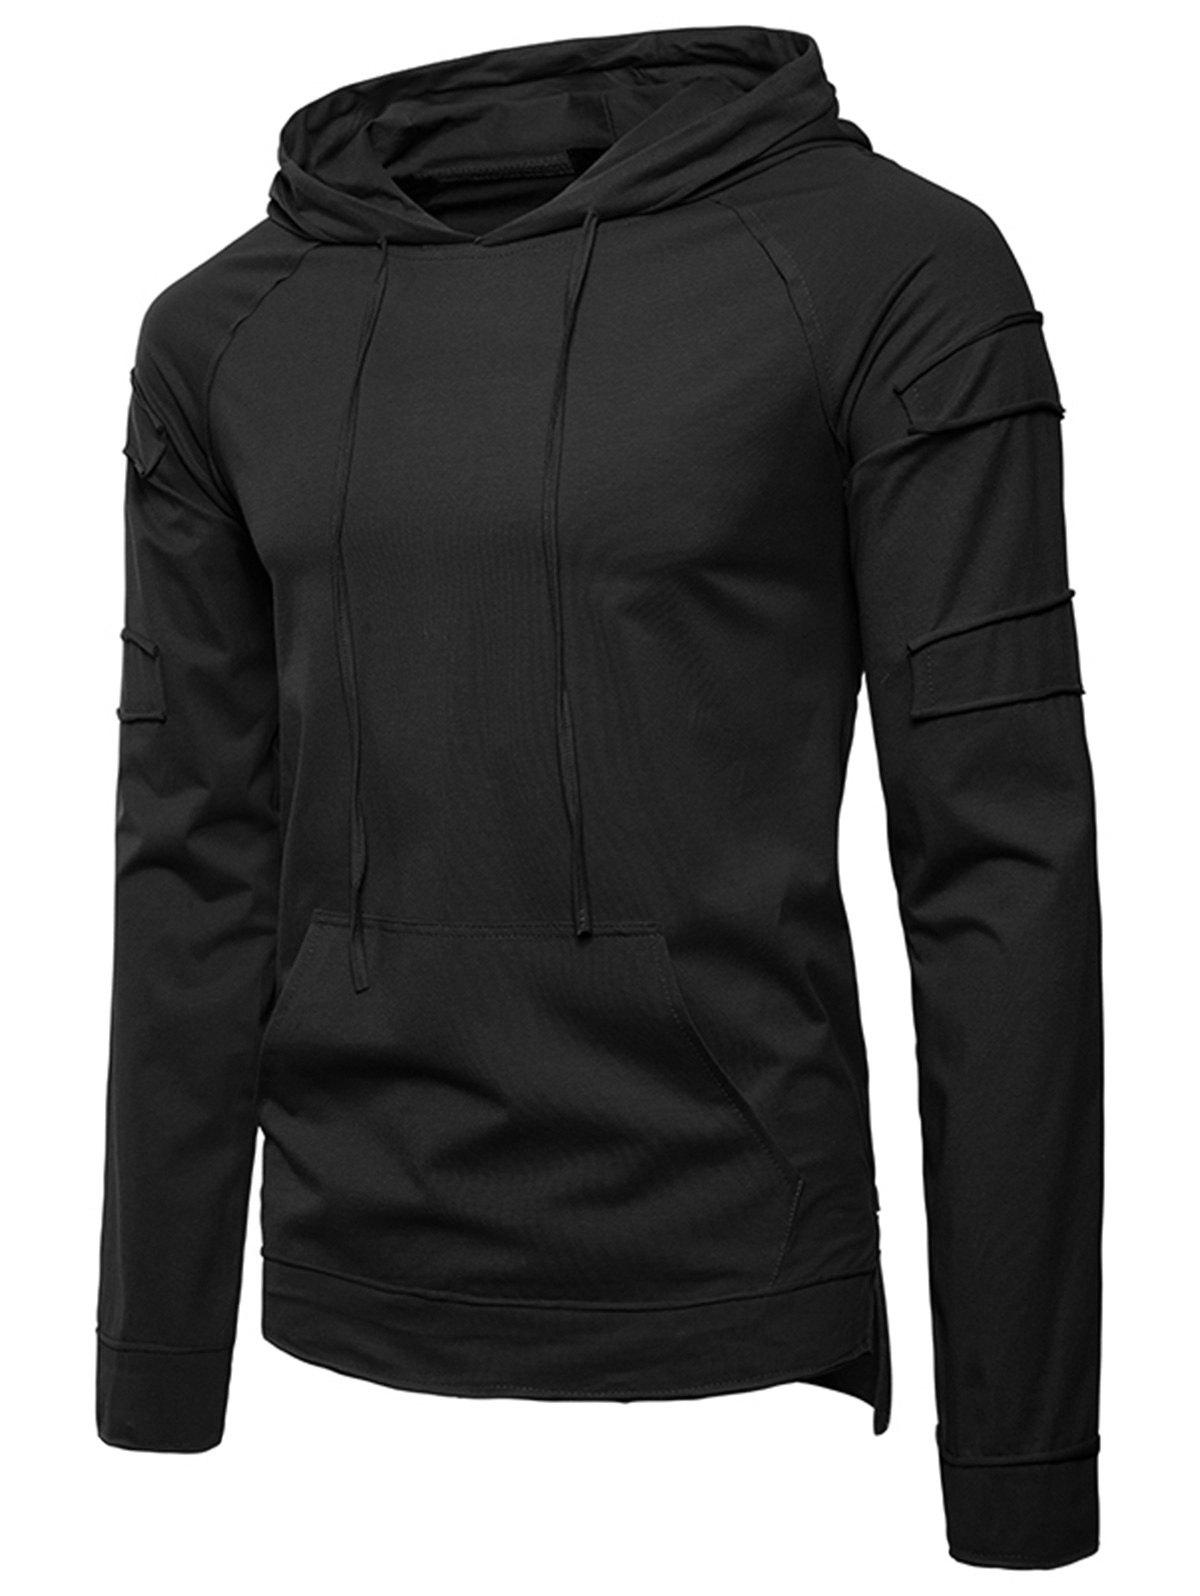 Pouch Pocket Panel Design Pullover Hoodie - BLACK L